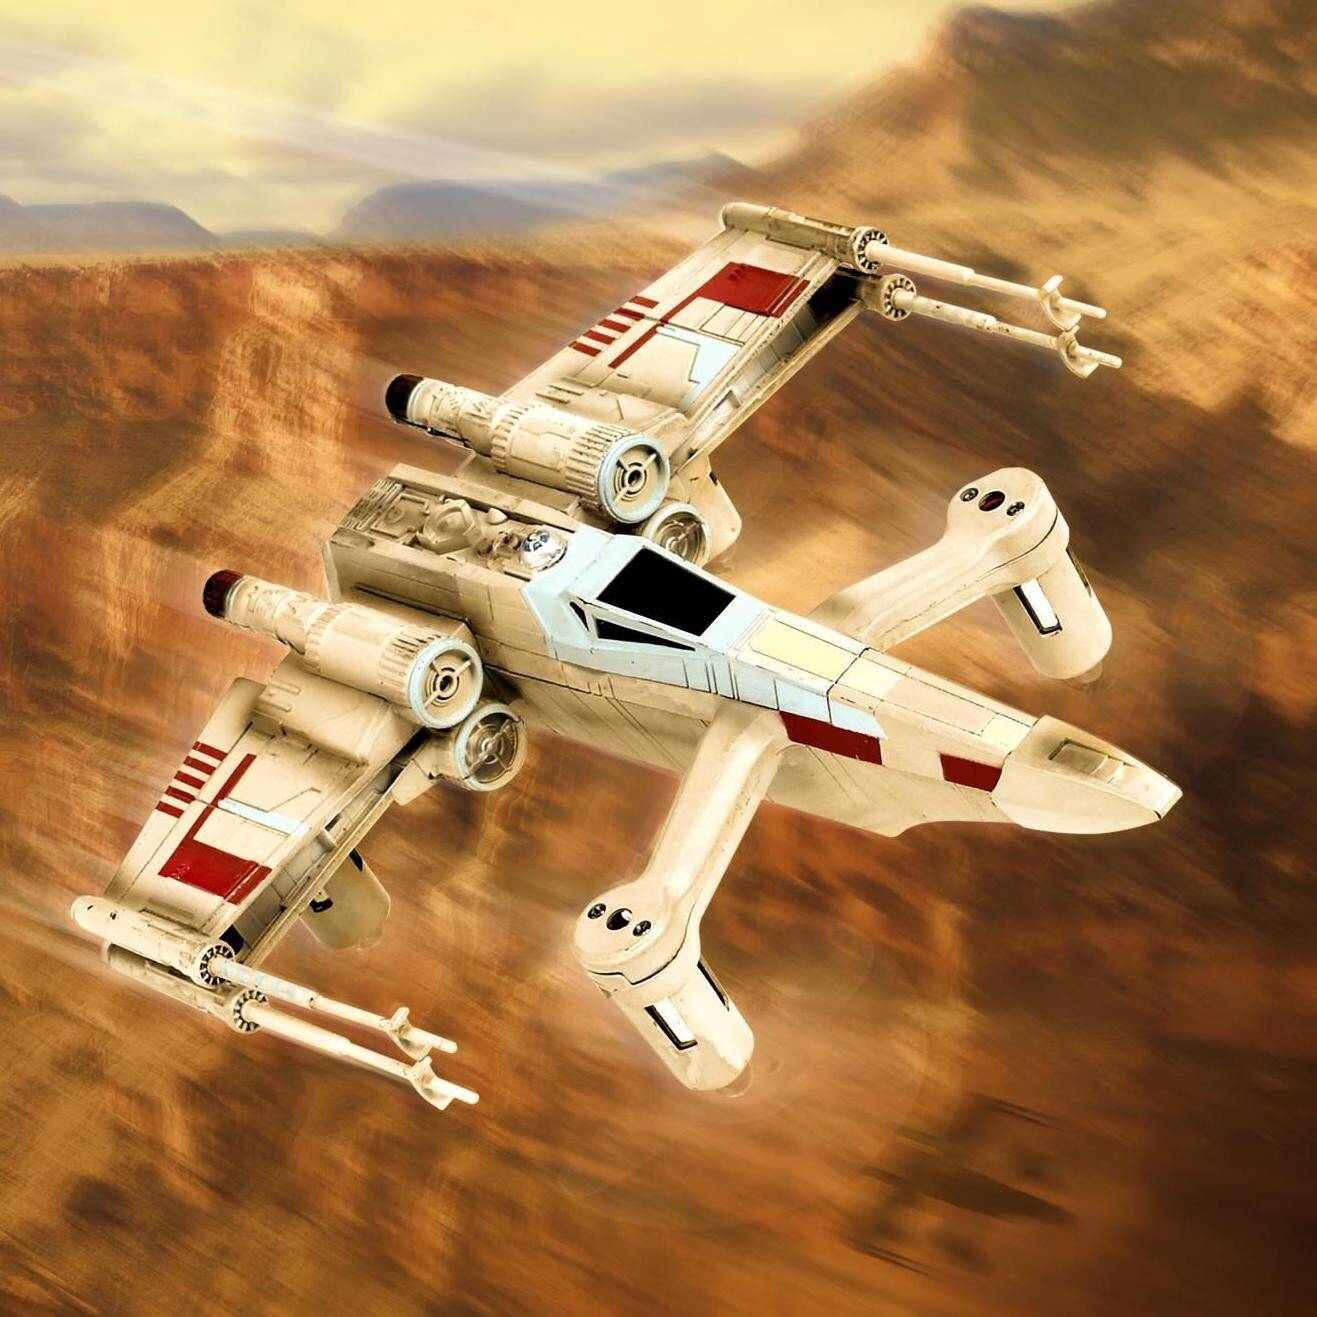 Star Wars Battle Drones - http://coolthings.us